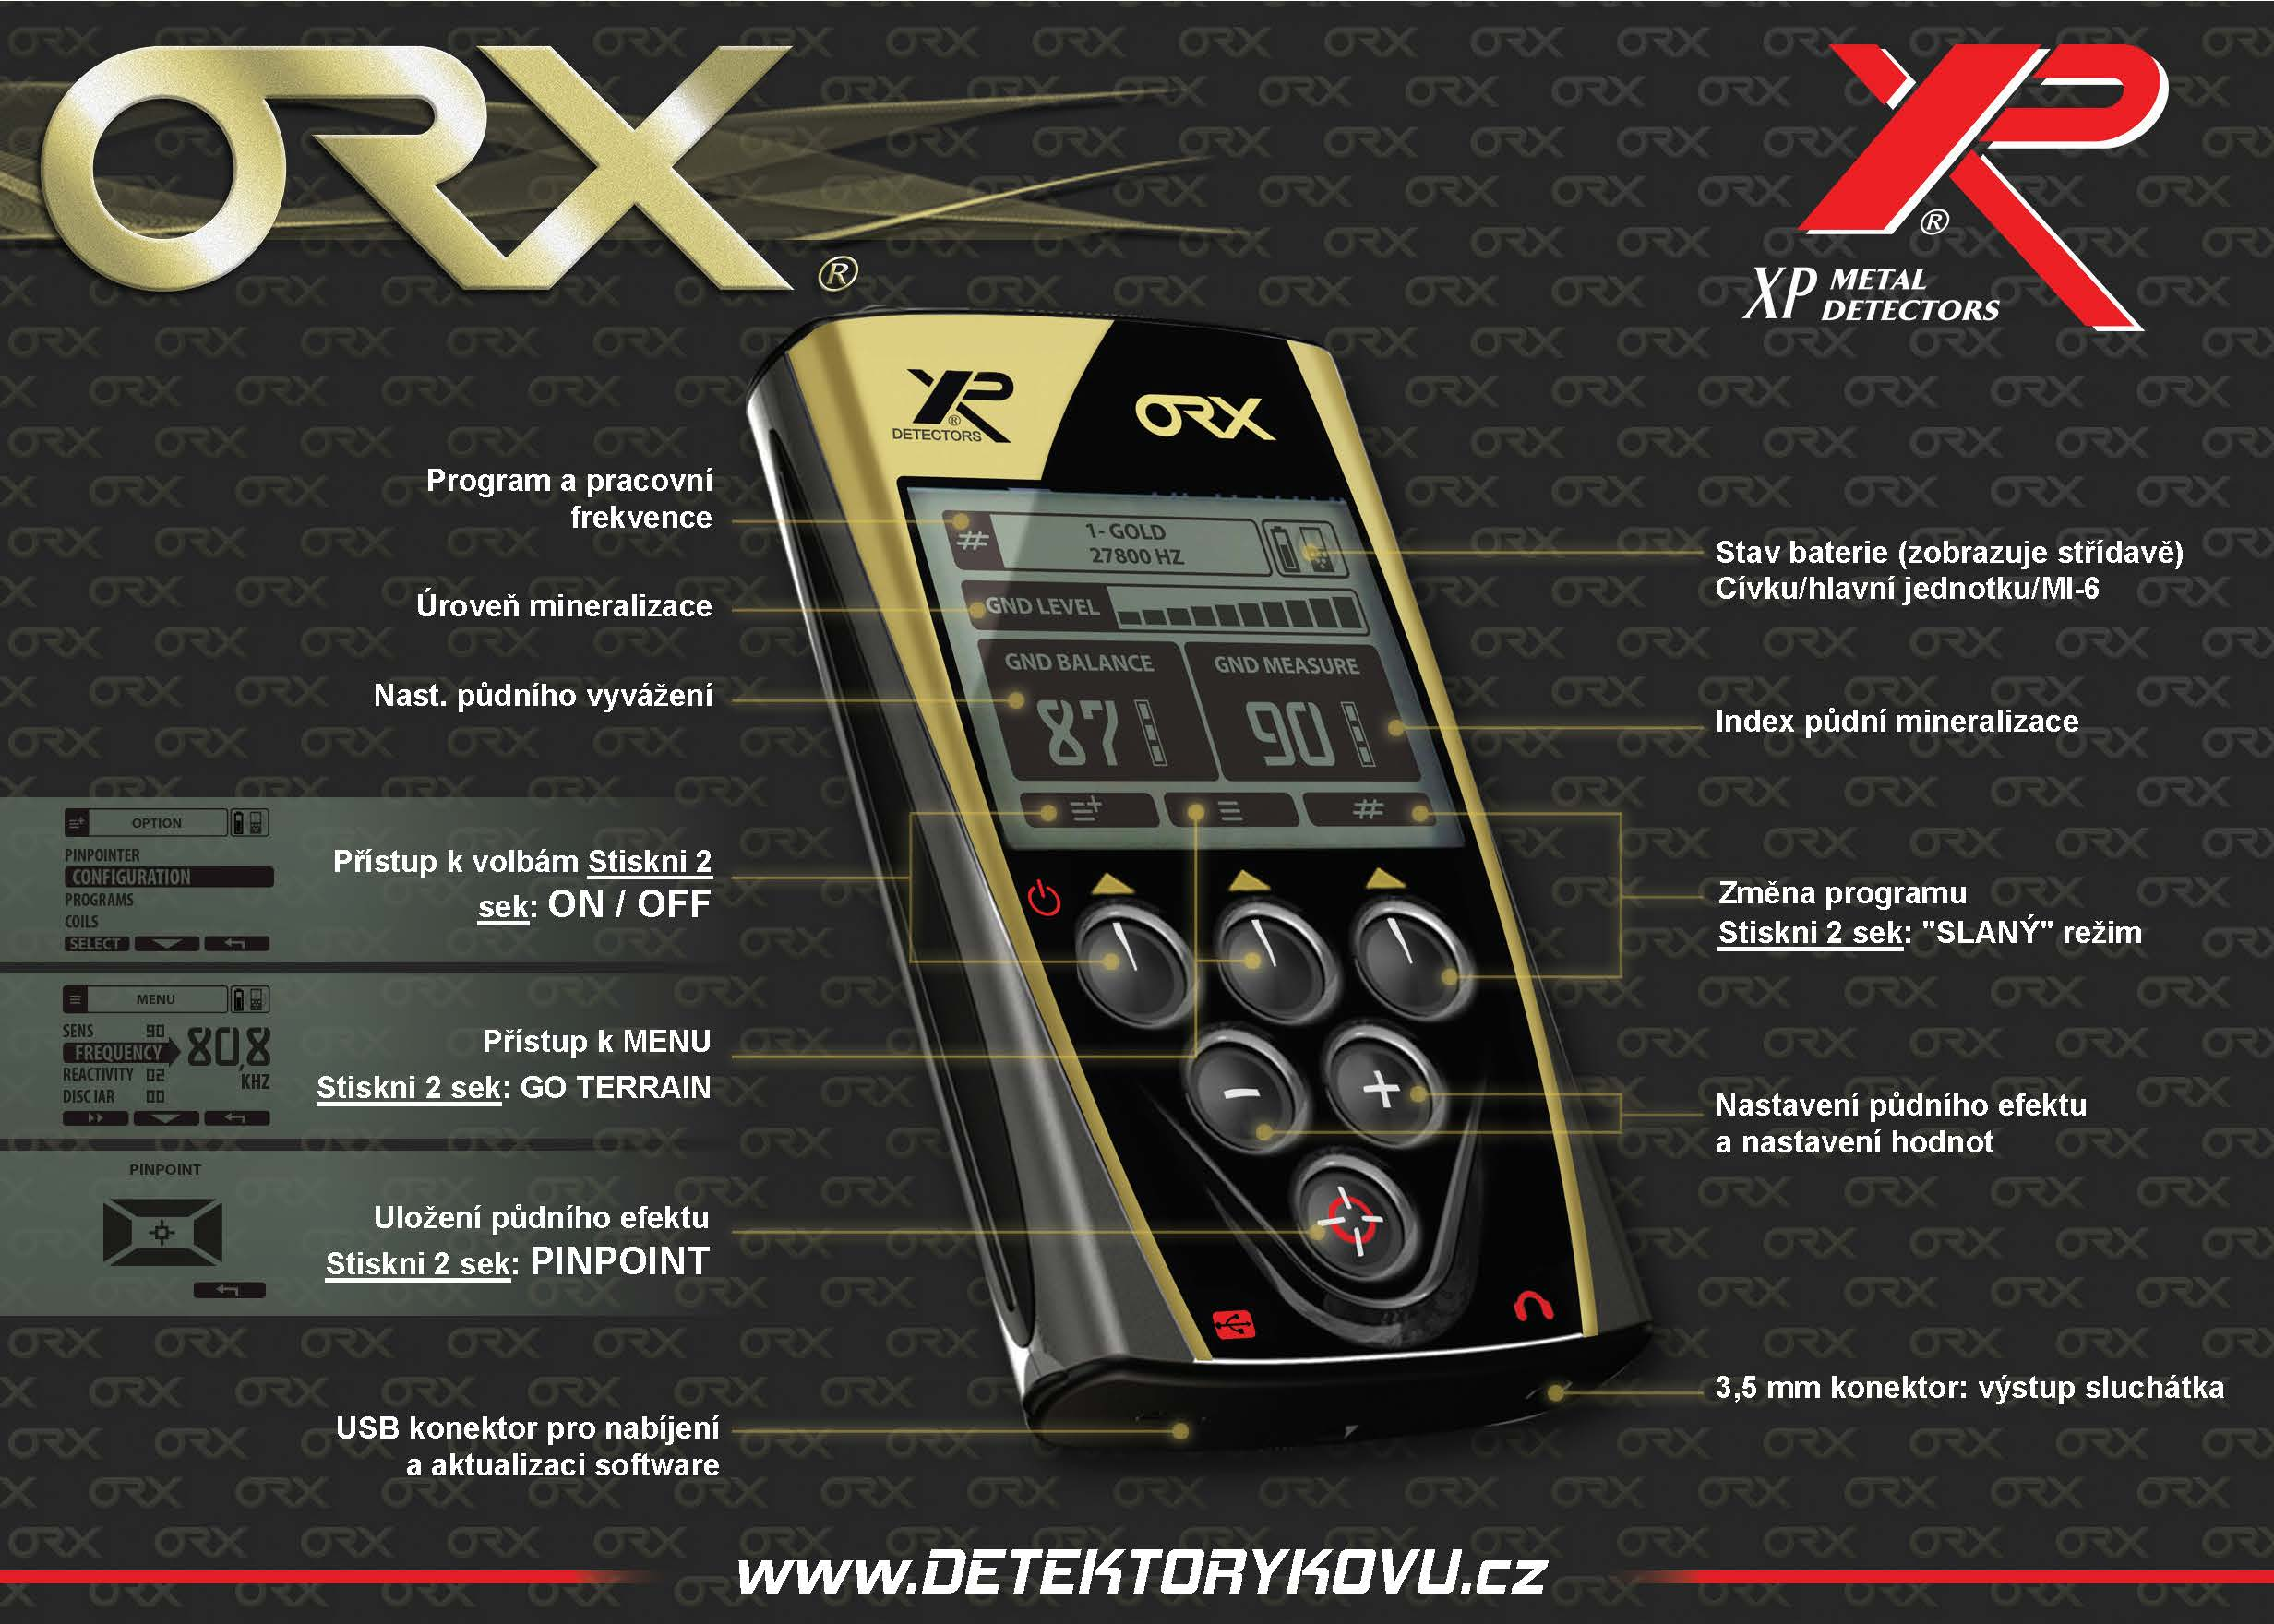 ORX_RC_FEATURES-CZ